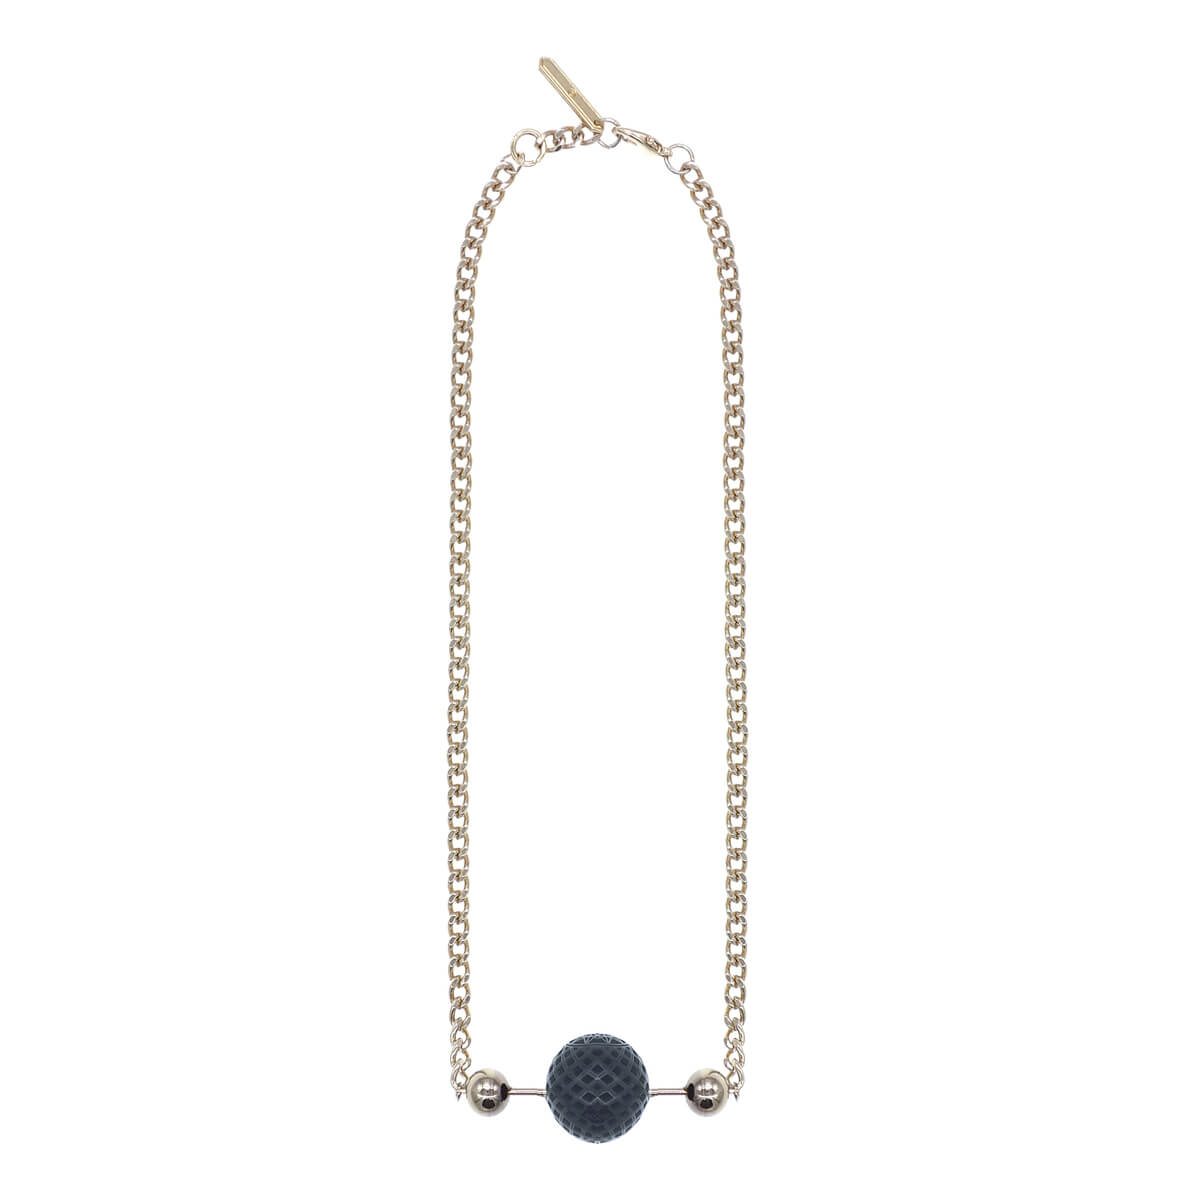 SAMPLE SALE Single Bead Bar Necklace Black